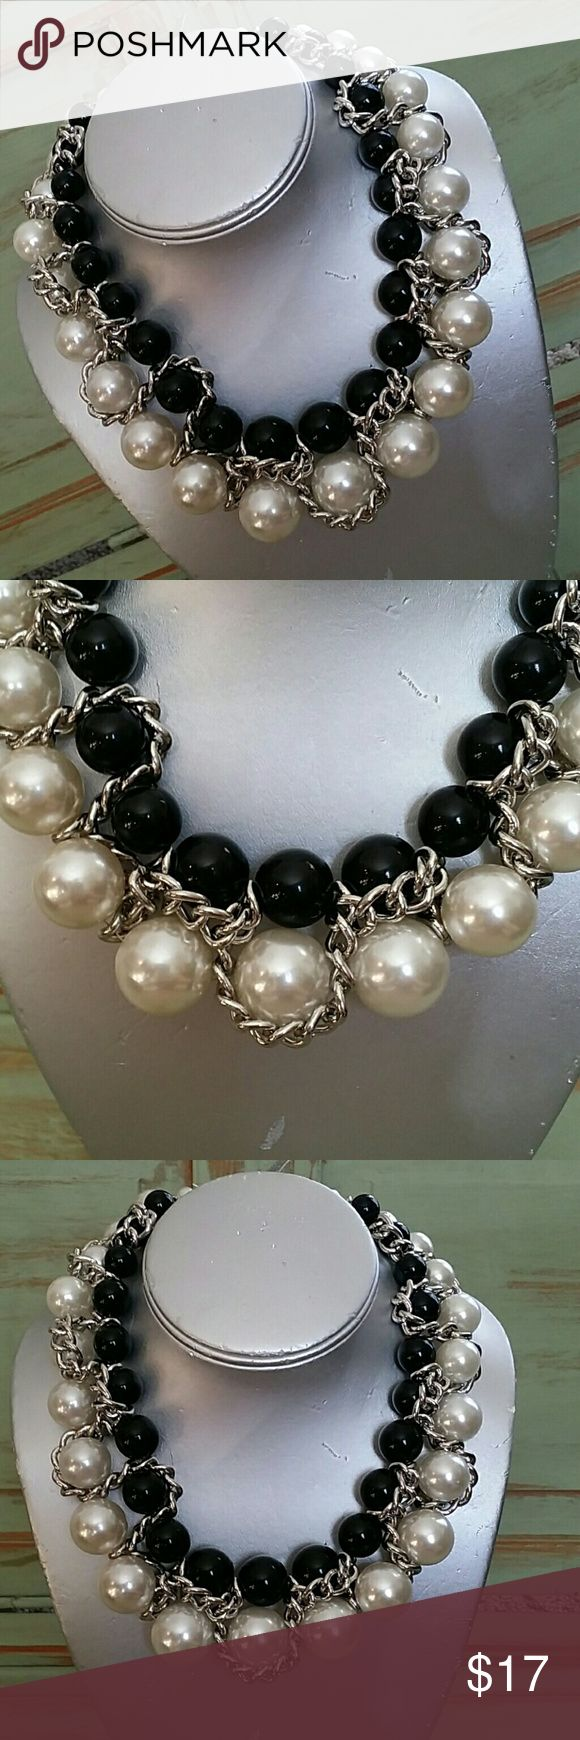 NWT BLACK AND WHITE NECKLACE CHUNKY PEARL NECKLACE NWT.  CHUNKY NECKLACE. Jewelry Necklaces